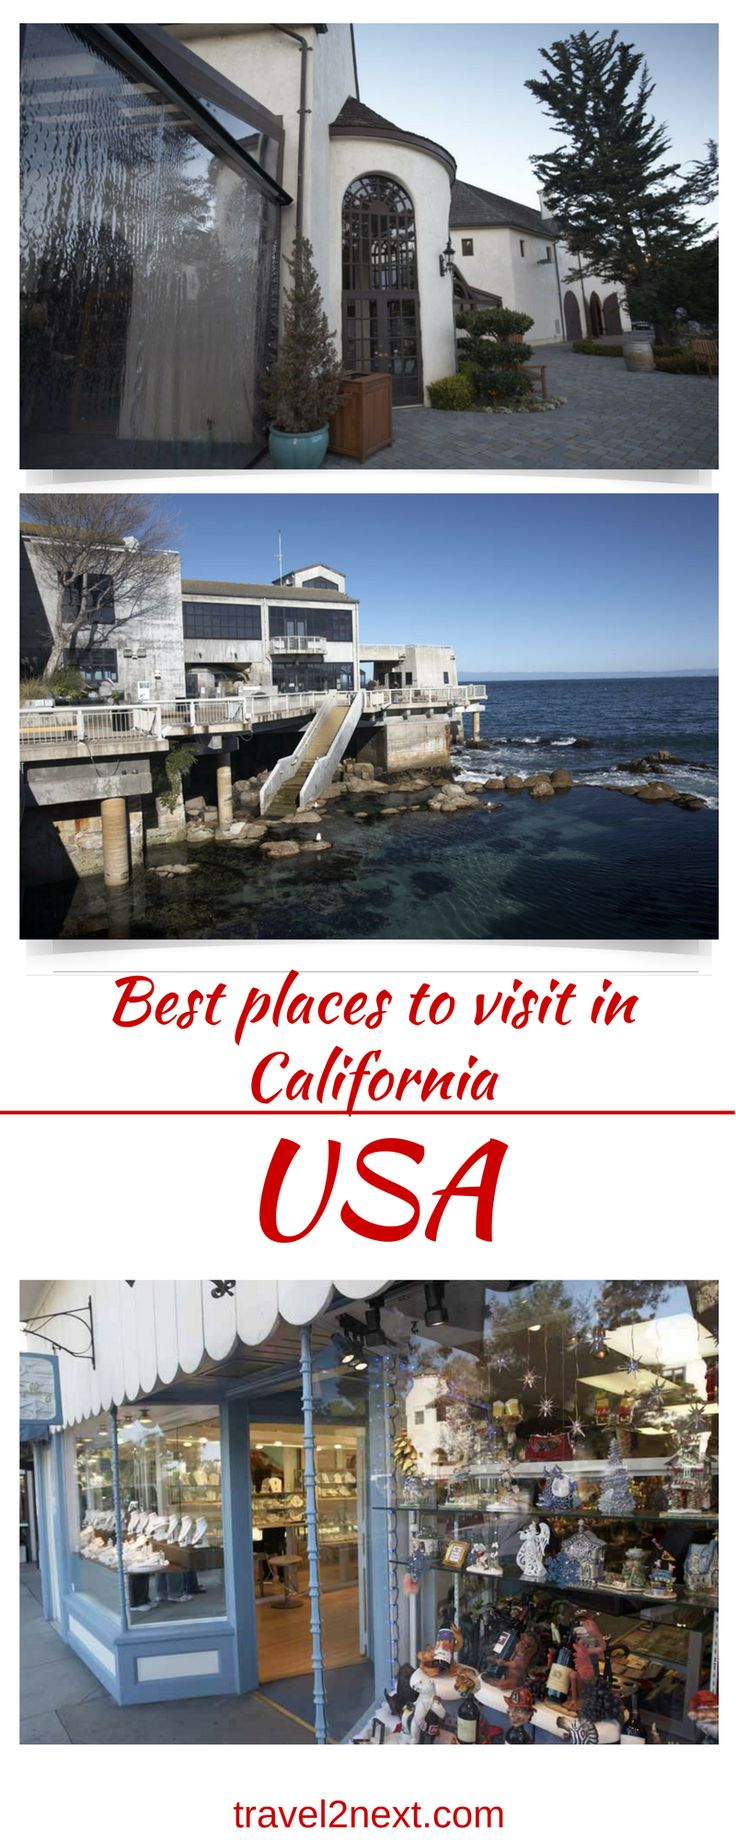 Best places to visit in California USA. A road trip along the Pacific Coast Highway between San Francisco and Los Angeles is one of California's most scenic drives and reveals some of the best places to visit in California.